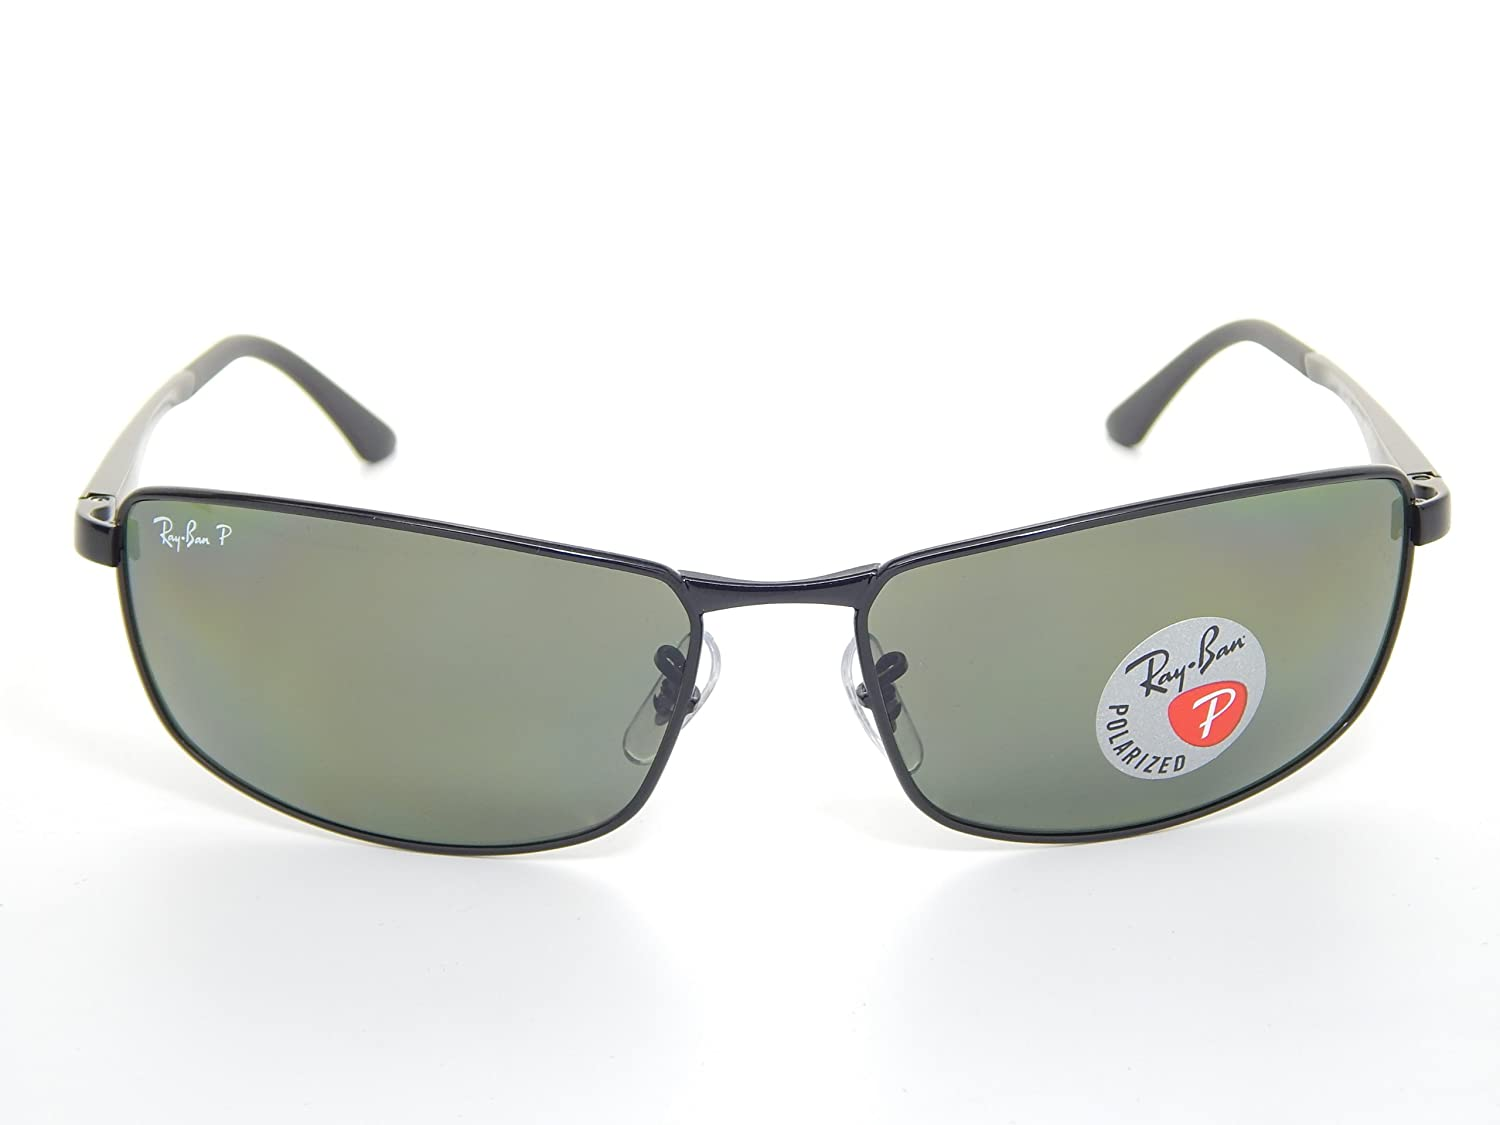 750eaf45d7 Amazon.com  New Ray Ban RB3498 002 9A Black Polarized Green 64mm  Sunglasses  Clothing